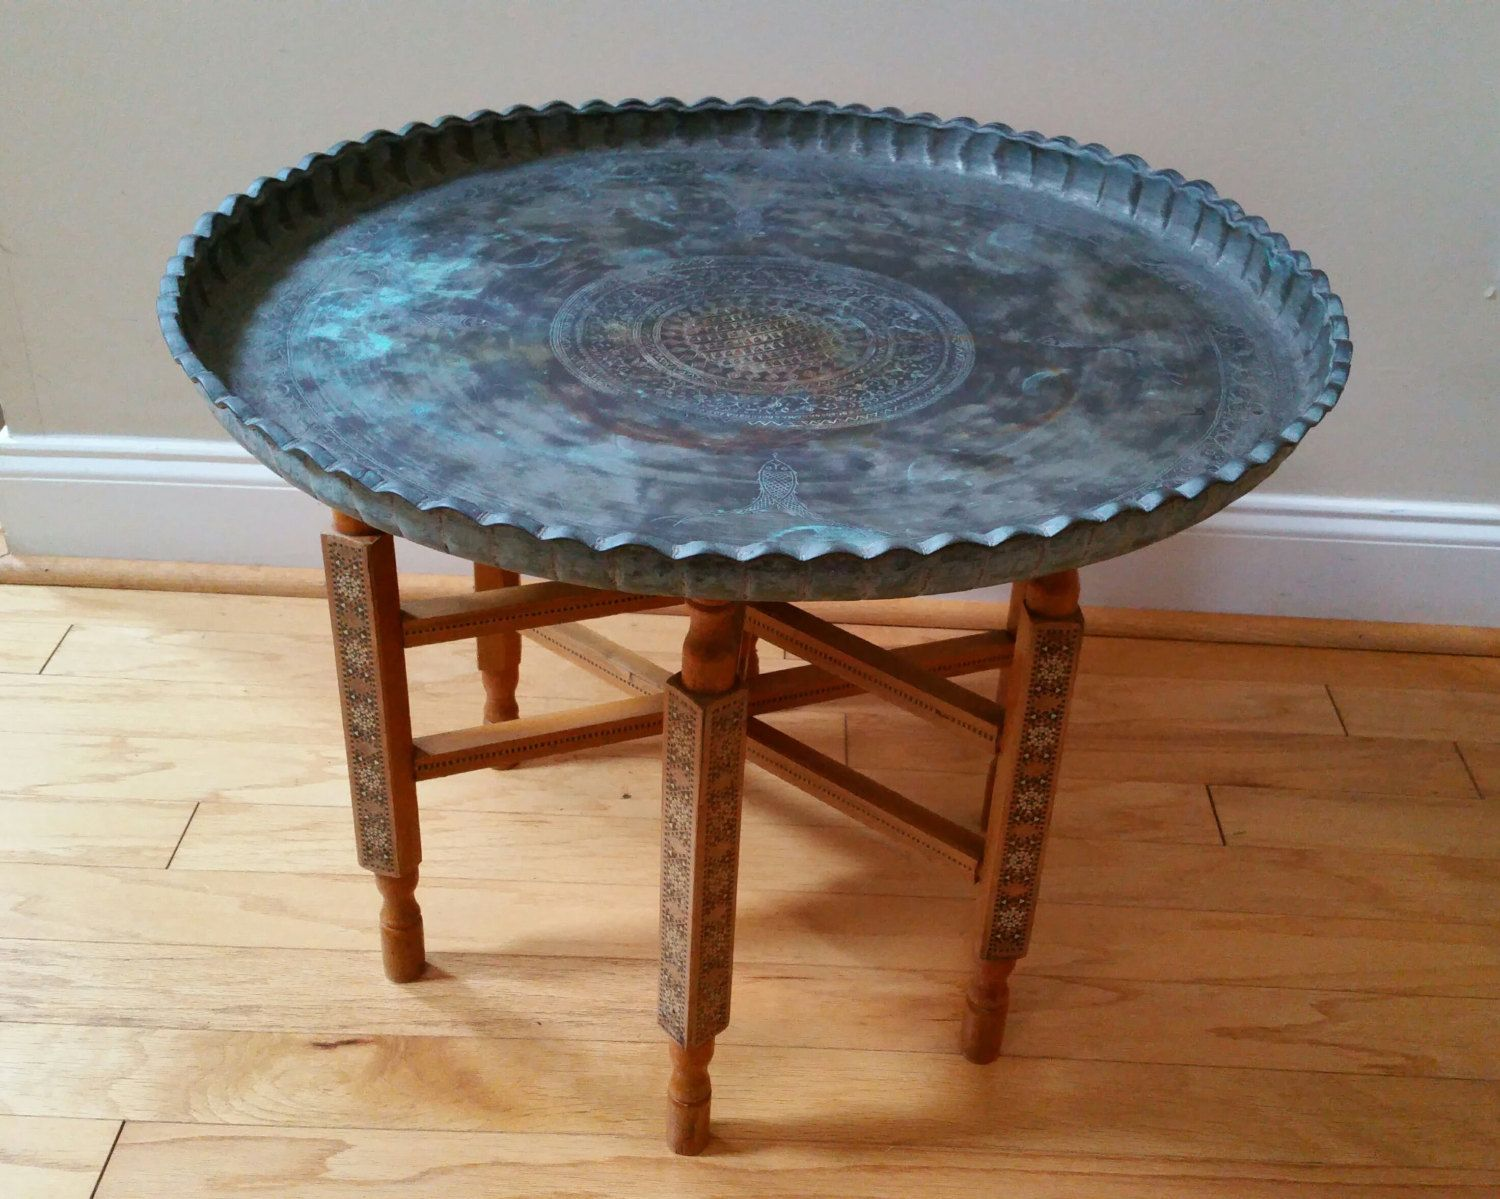 Vintage Ornate Round Etched Brass Tray Table Coffee Table With Patina Brass Tray Table Coffee Table Table [ 1199 x 1500 Pixel ]